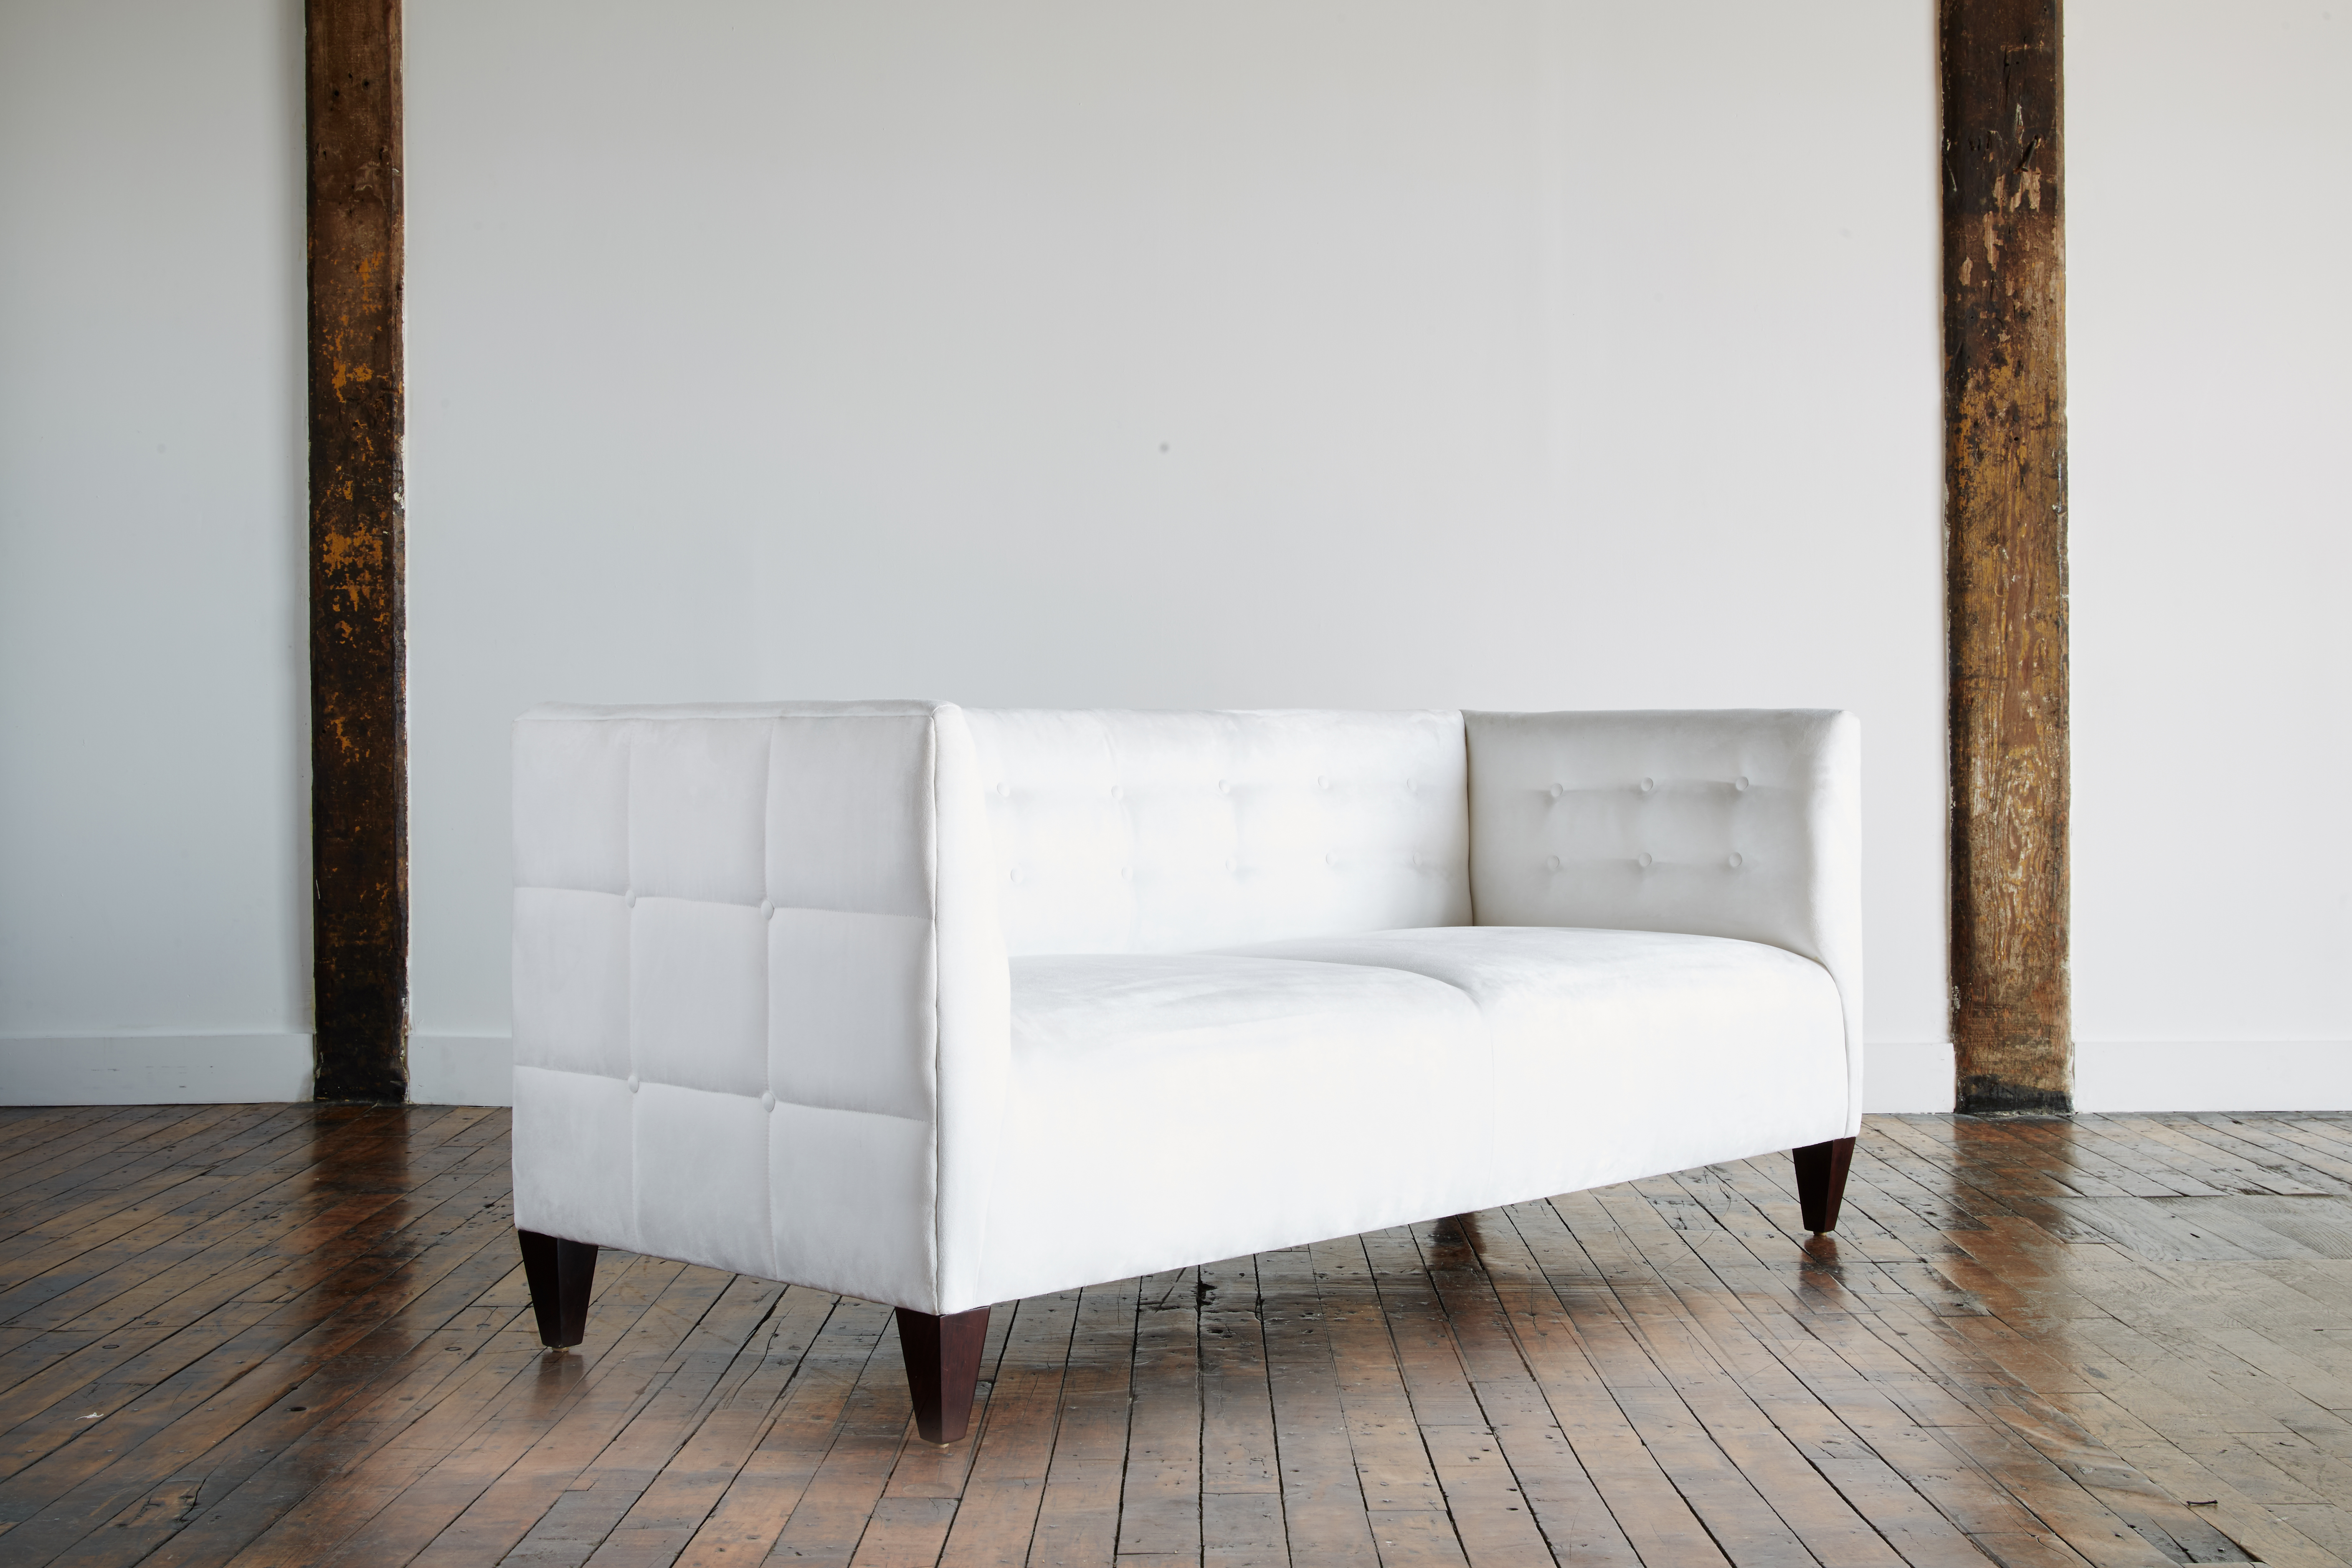 REESE_SOFA_EDITORIAL1_217. REESE_SOFA_FRONT_074. REESE_SOFA_EDITORIAL1_217.  REESE_SOFA_FRONT_074. Home / Collections / Reese